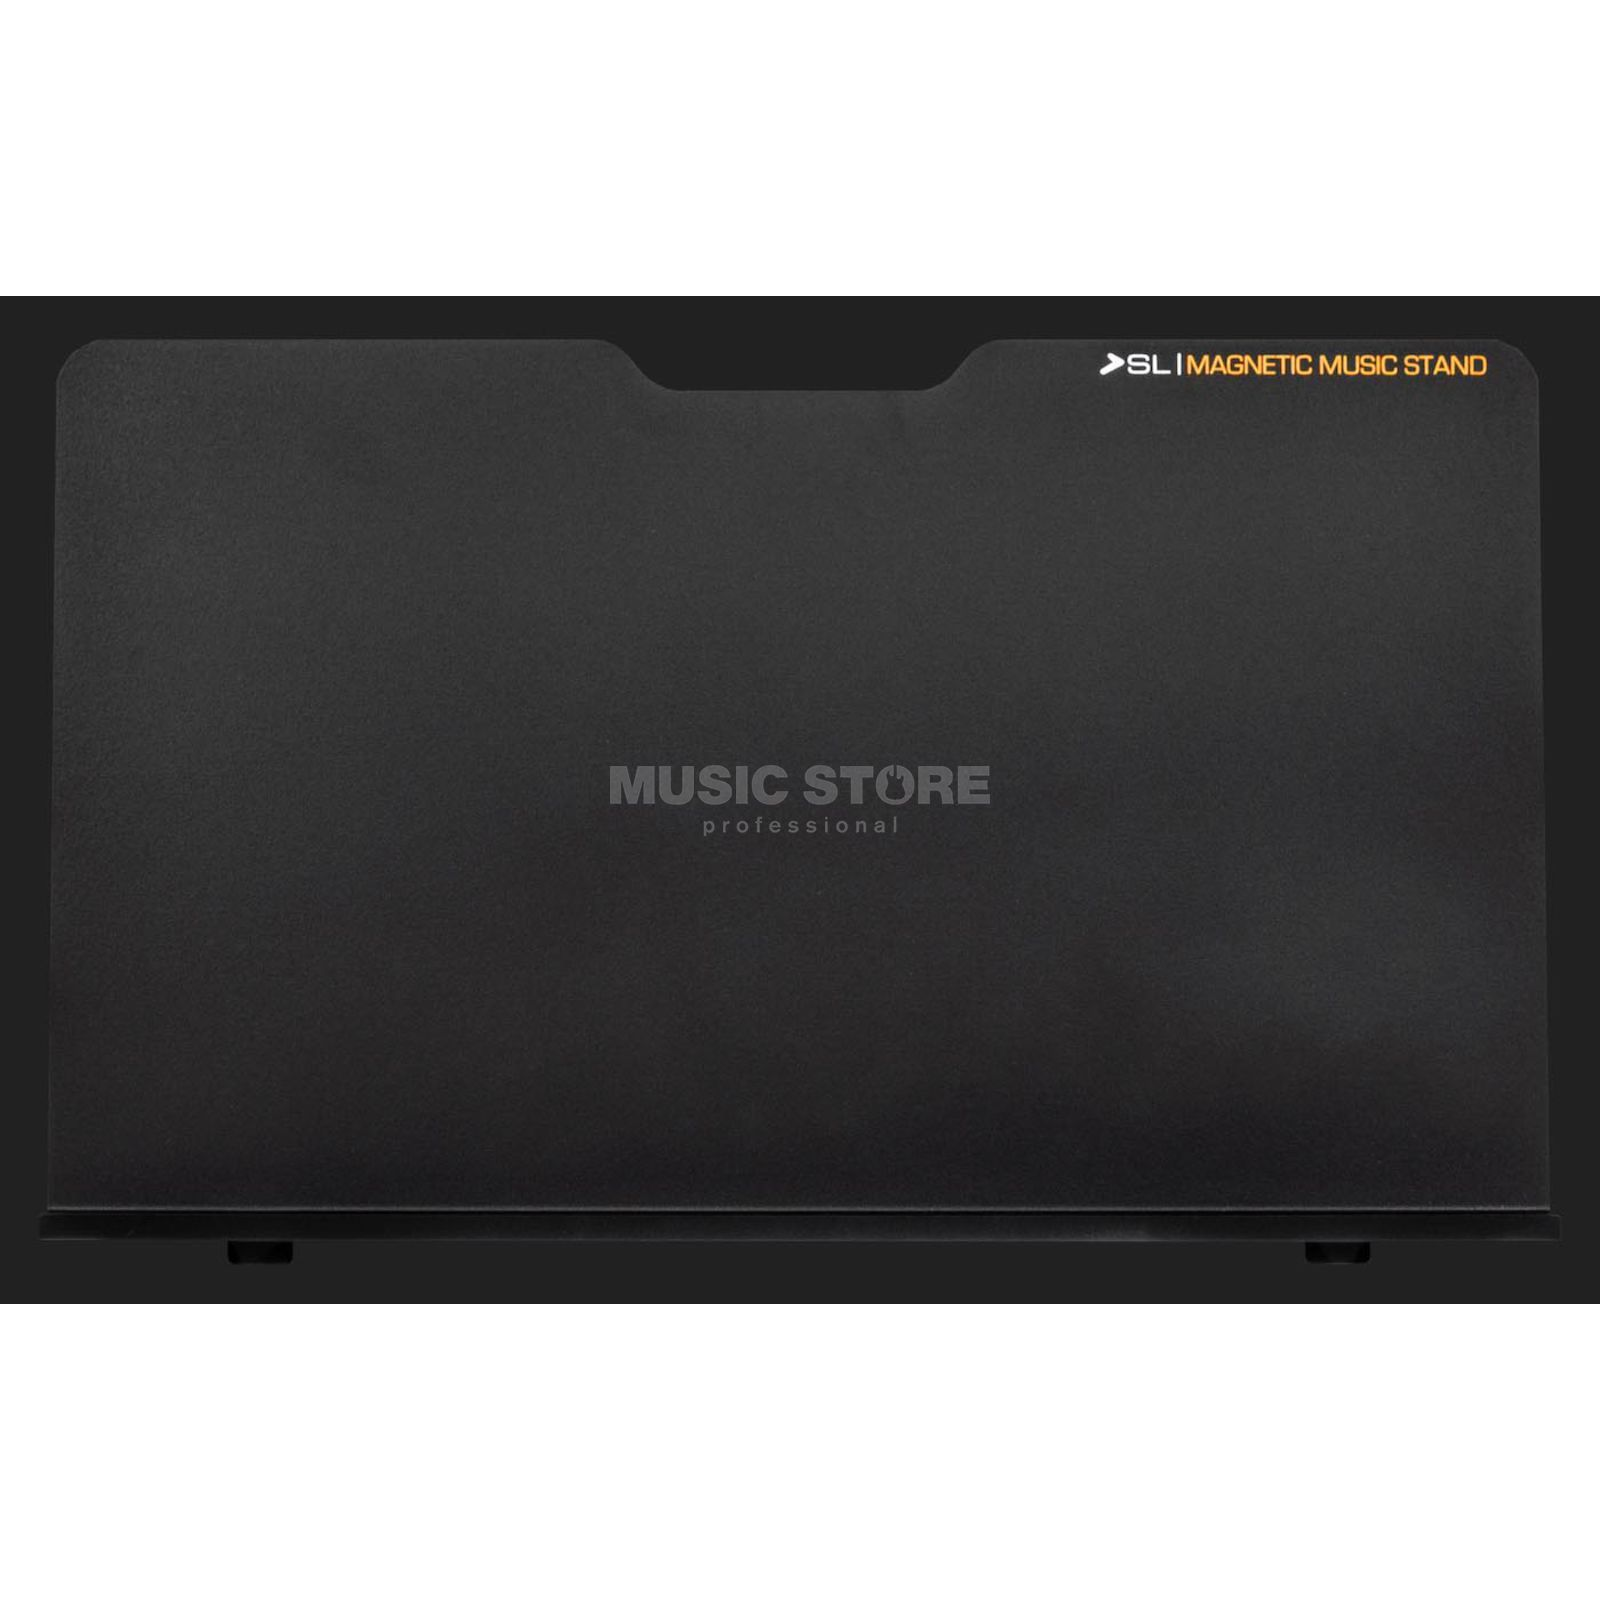 Studiologic SL Magnetic Music Stand Product Image